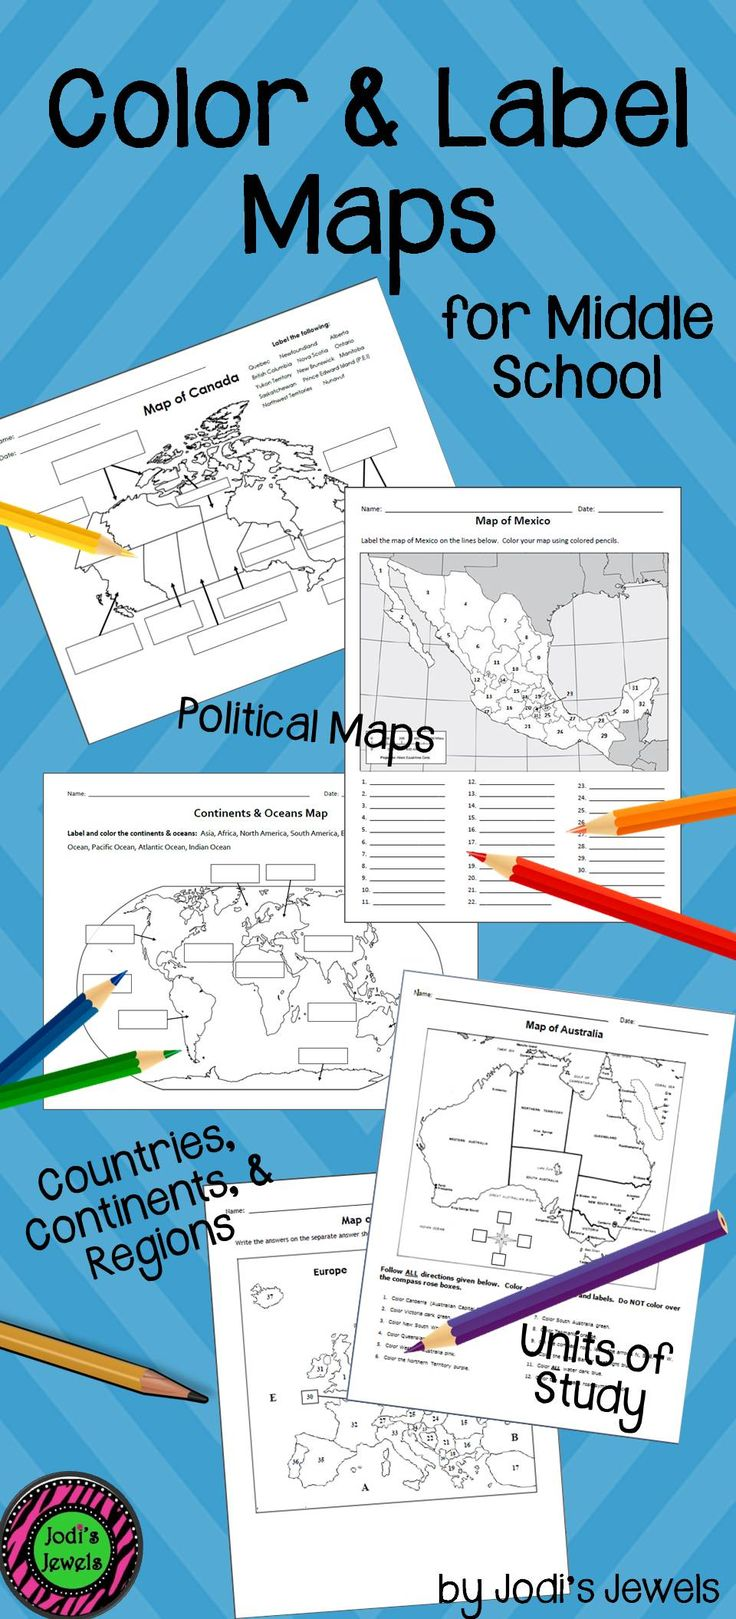 Visit Jodi's Jewels today for color and label maps of countries, continents, and regions! Enrich your middle school social studies units today! (MODIFIED maps are also available,)